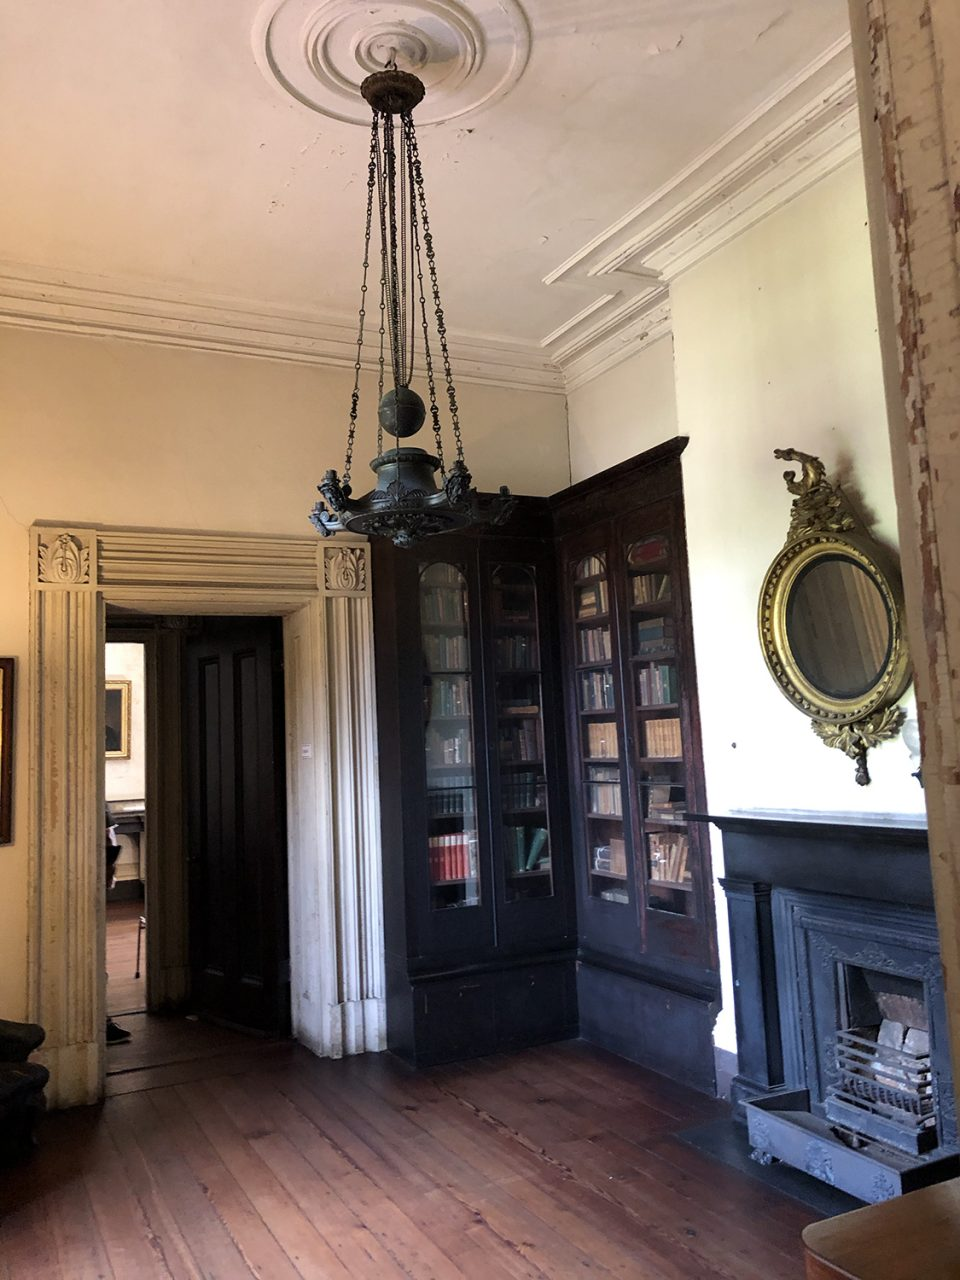 The old house still retains some of the original furnishings from various time periods